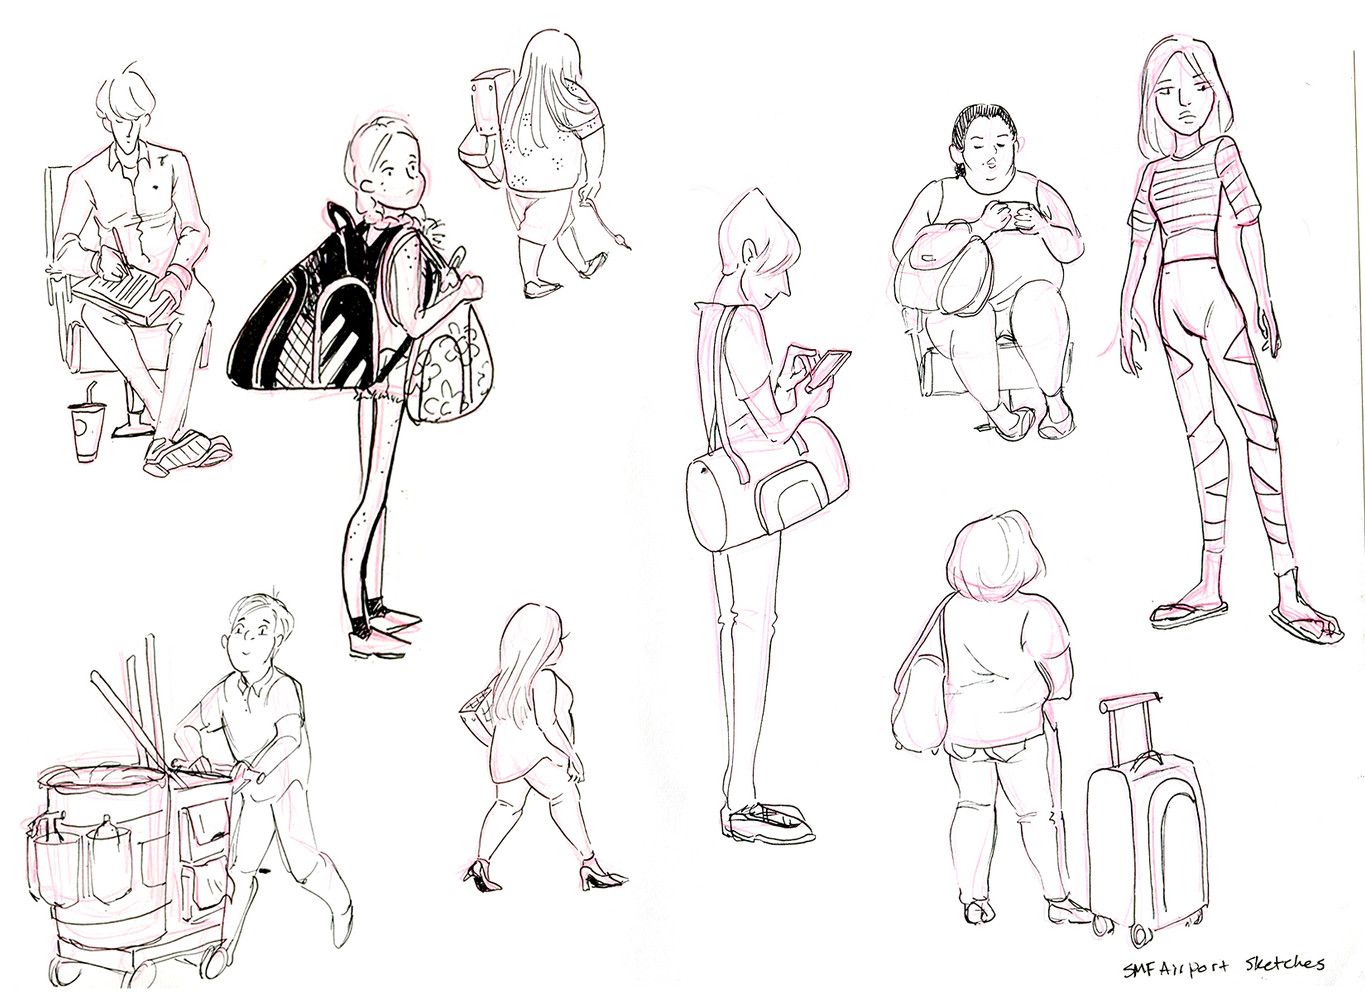 Airport Sketches